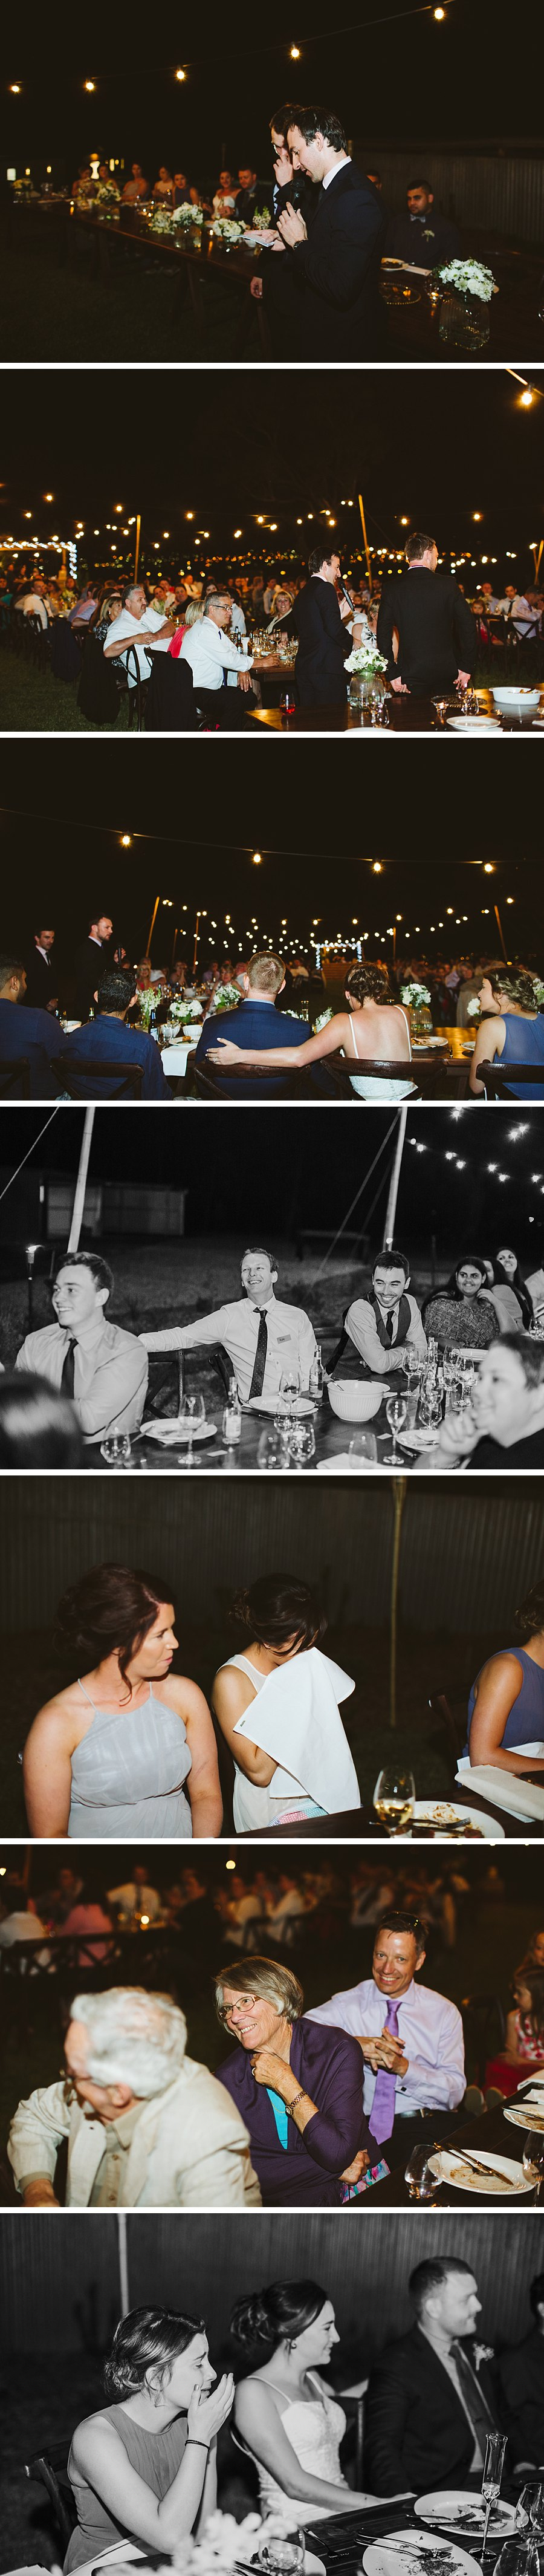 boxgrove-bathurst-wedding-photos_0070